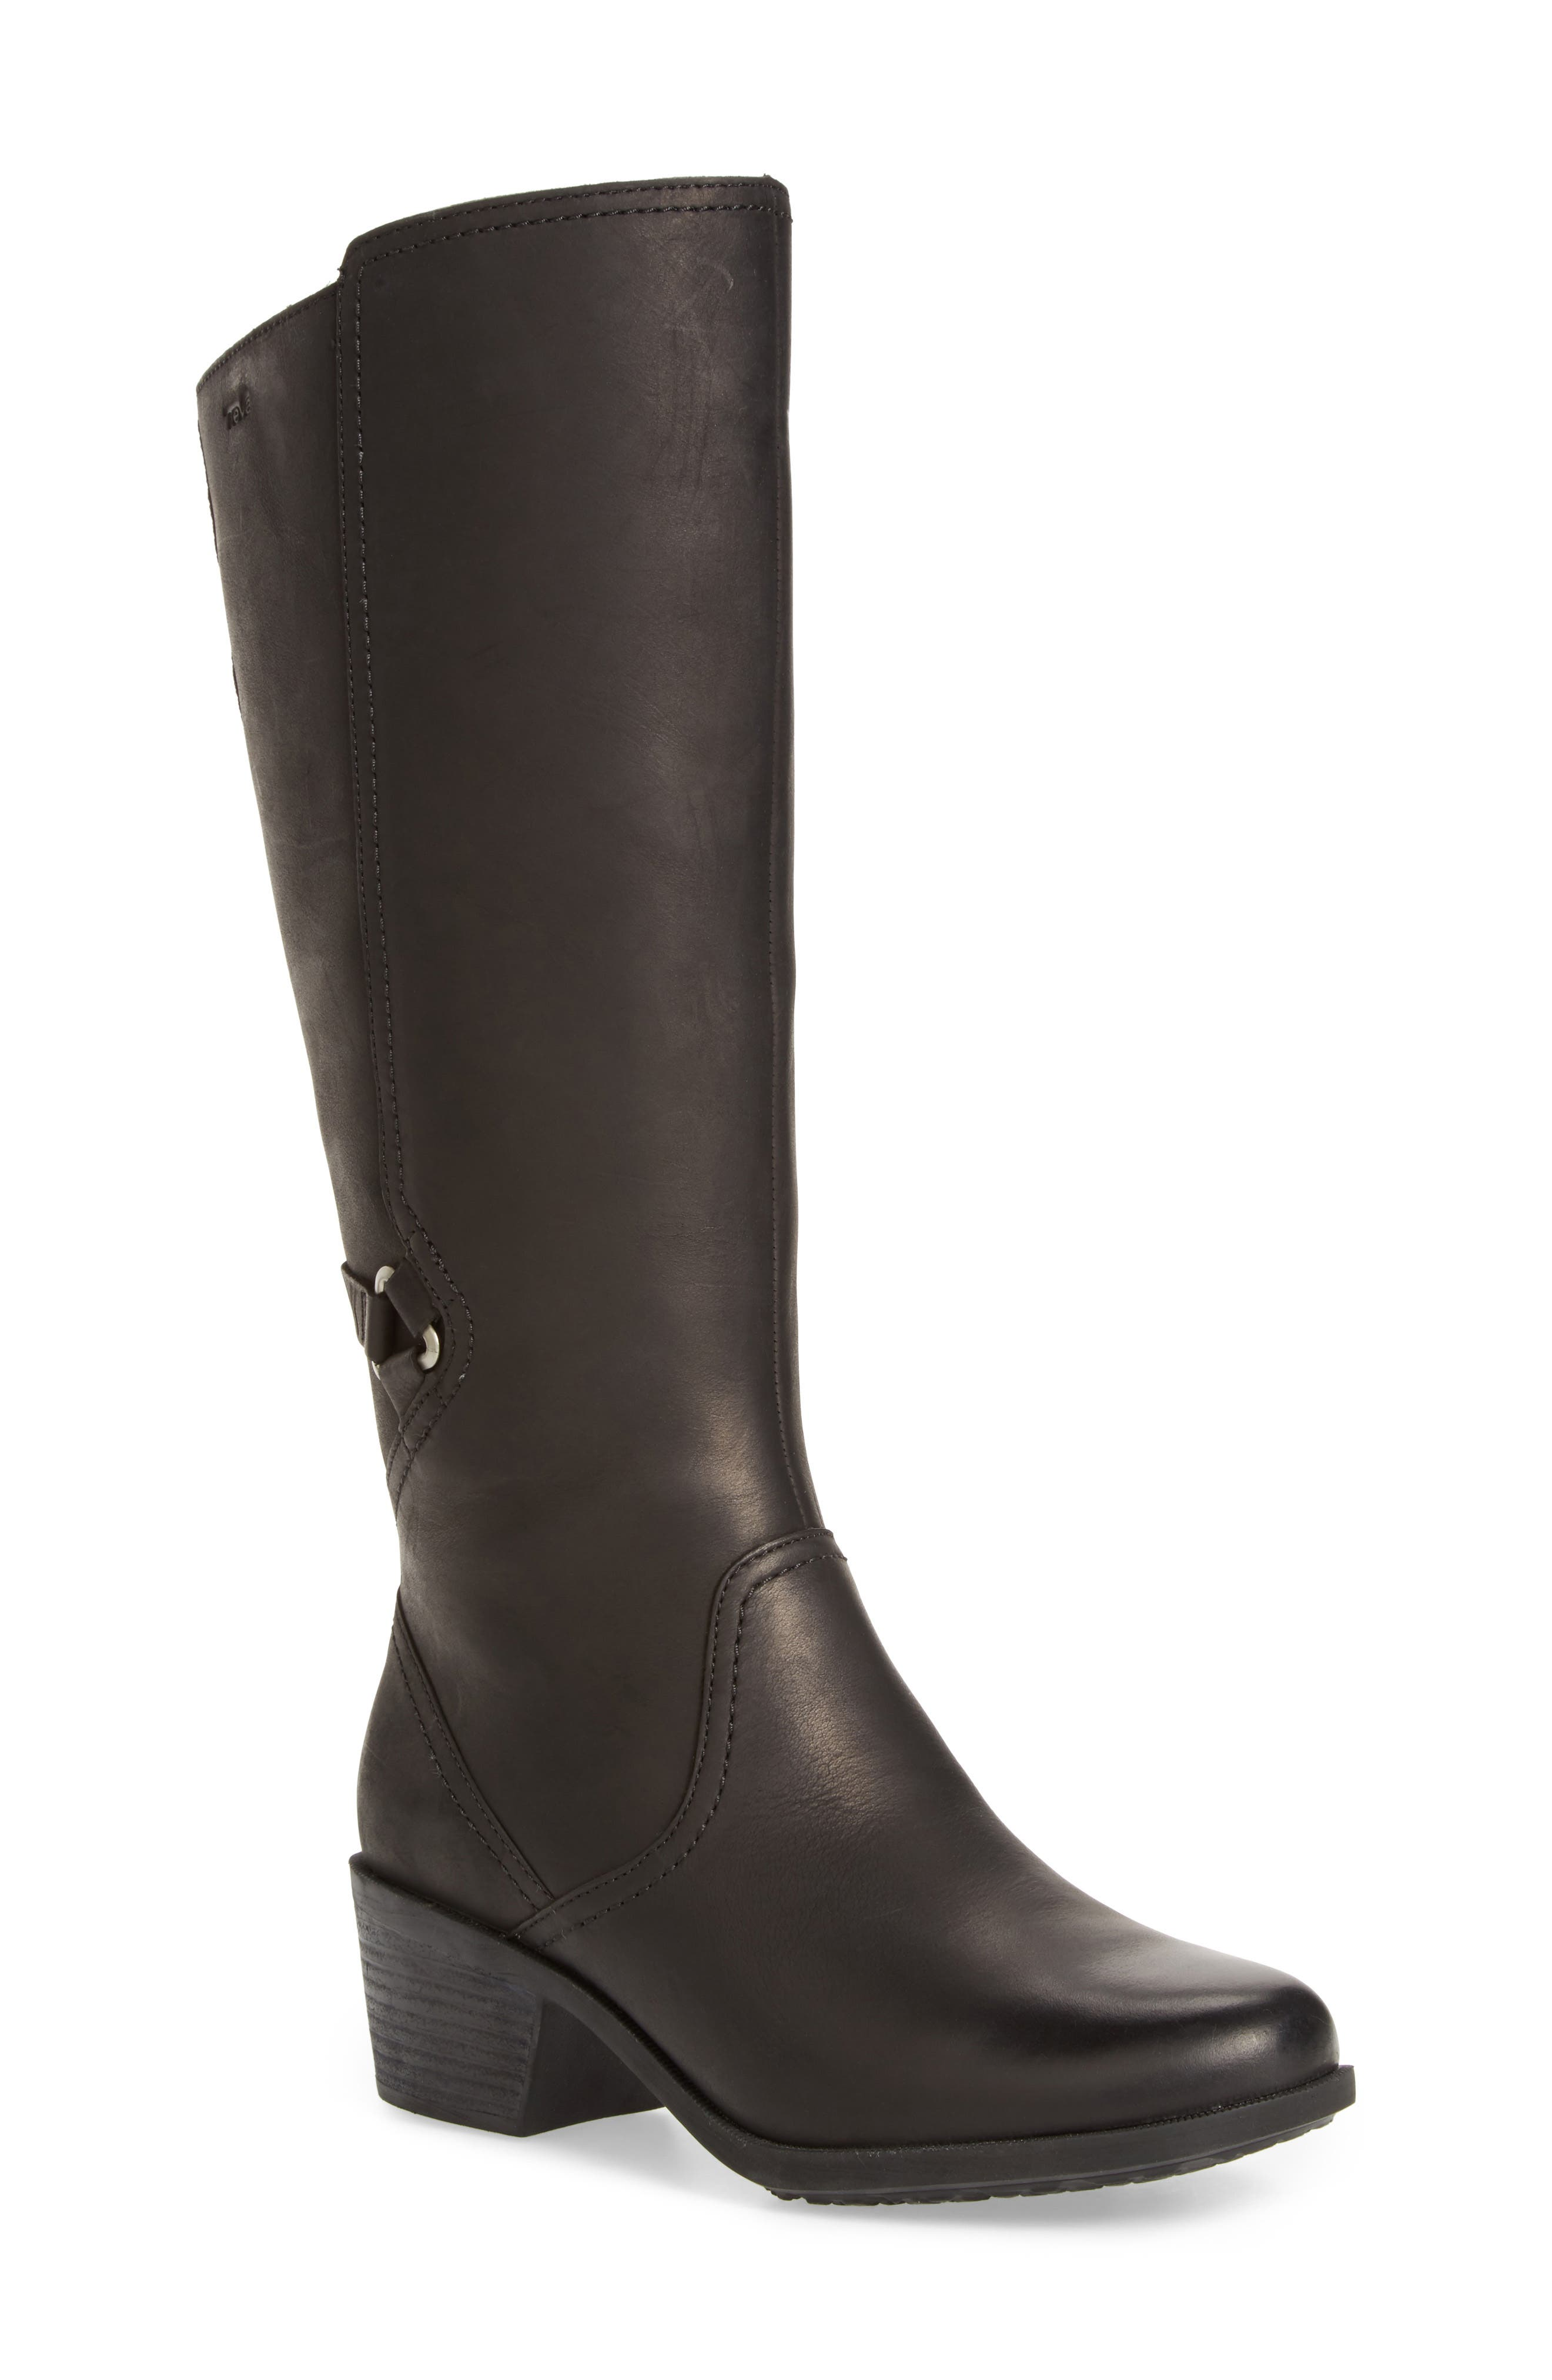 Foxy Waterproof Boot,                             Main thumbnail 1, color,                             BLACK LEATHER